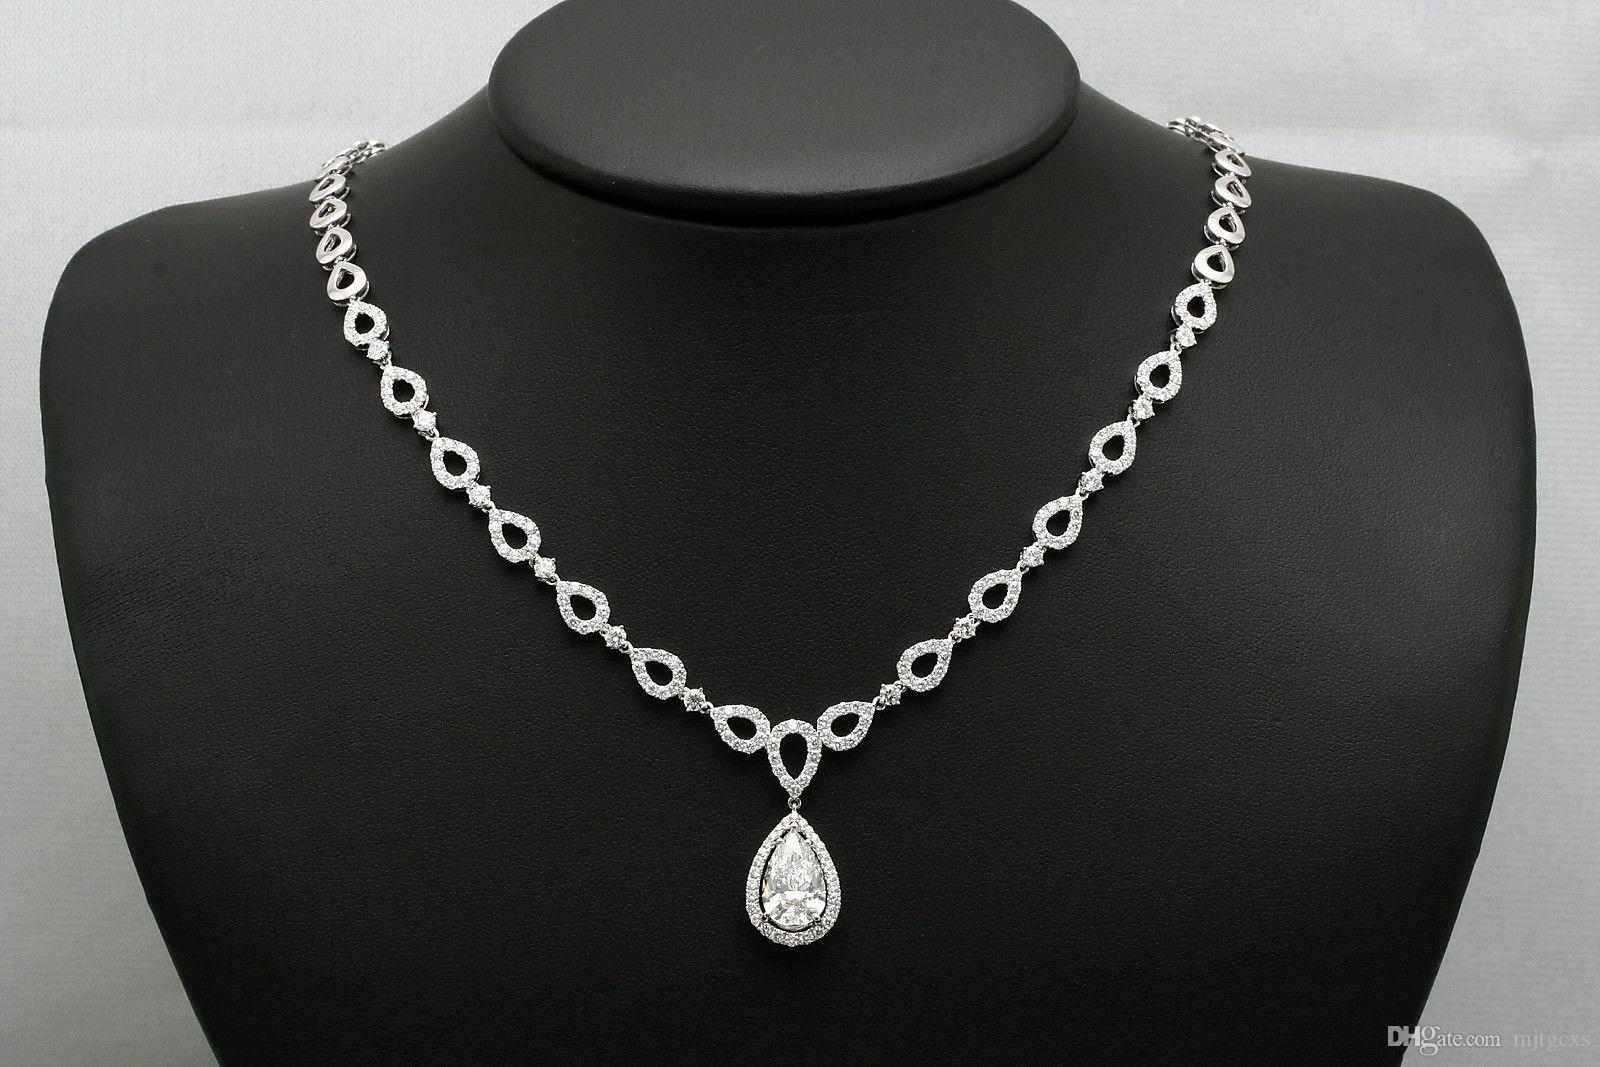 pendant shaped shop diamond ben pear bridge necklace jeweler